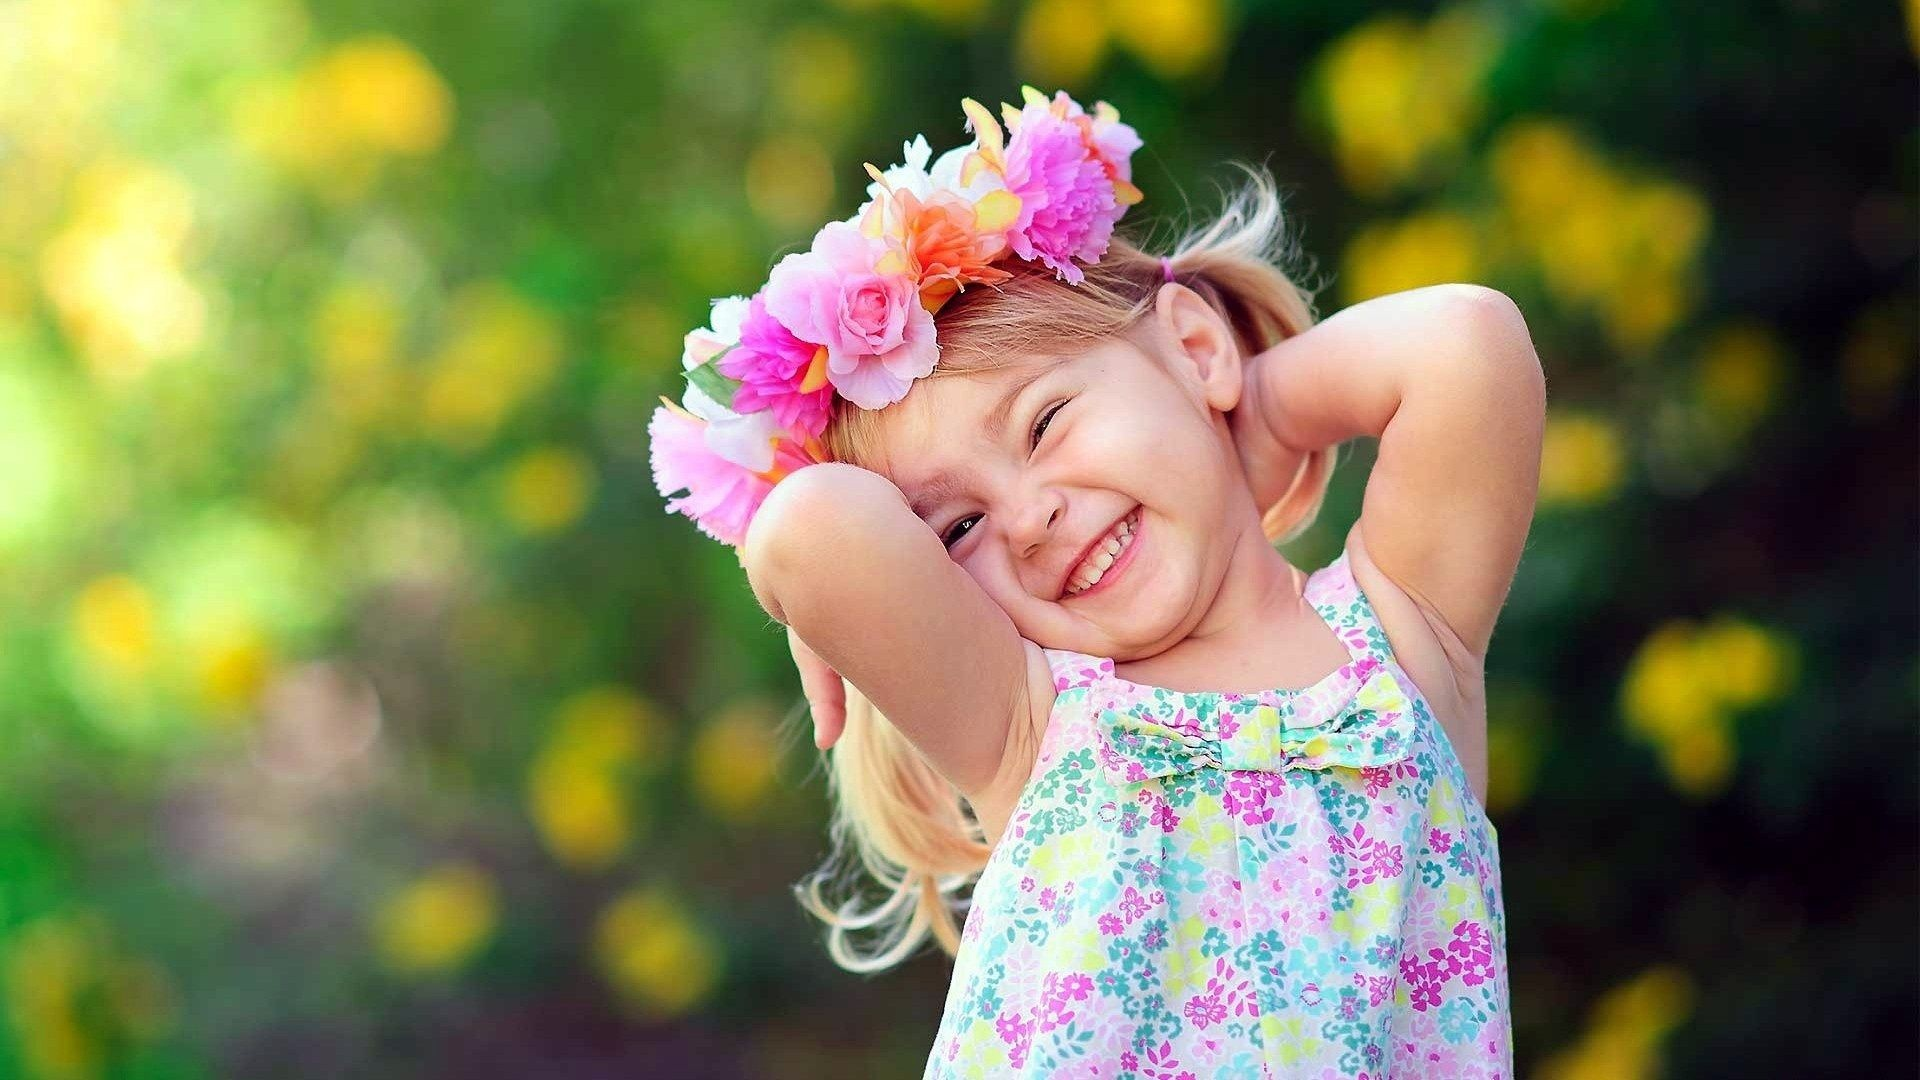 Best Quotes For Baby Girl Smile For Instagram